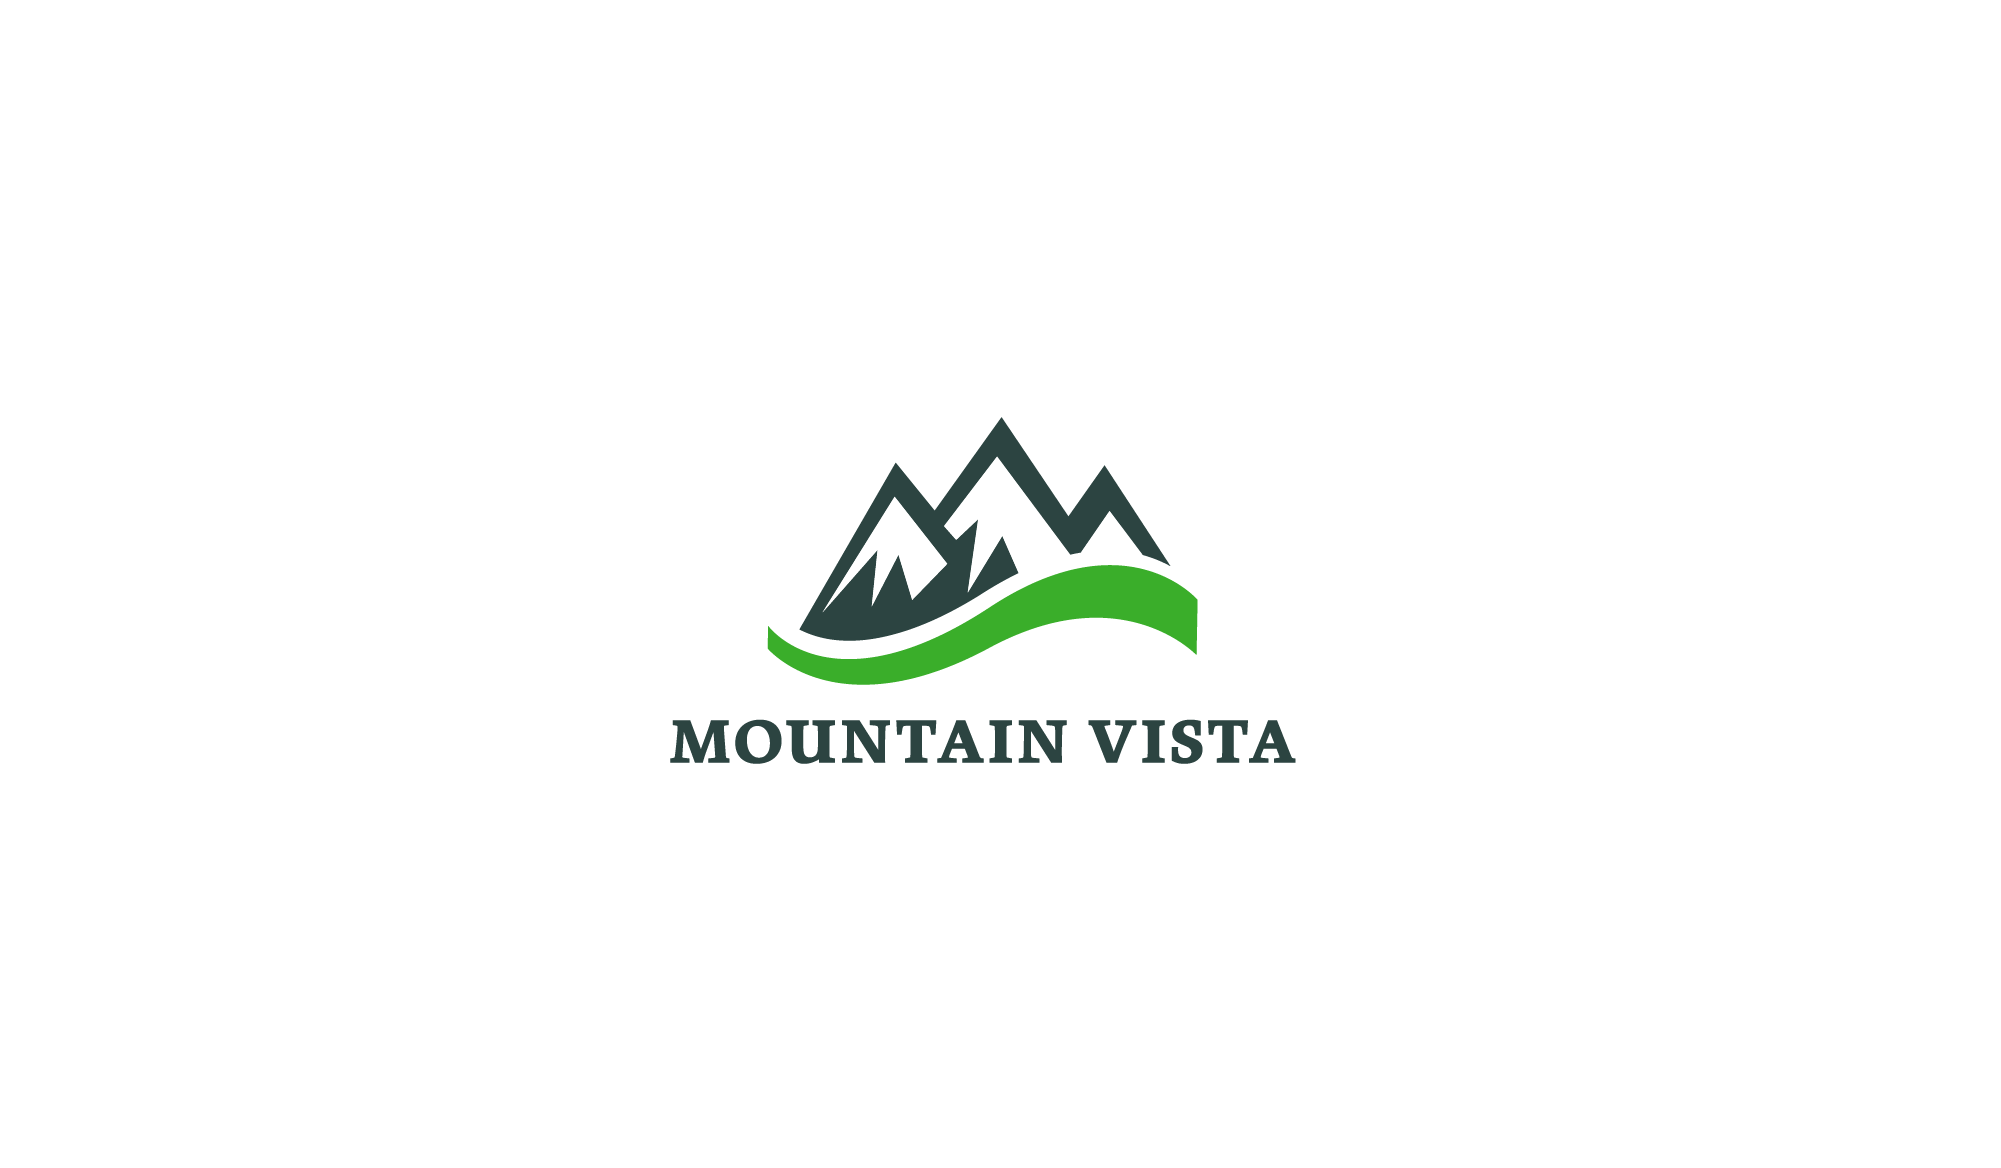 sb-logo-mountain-vista-17